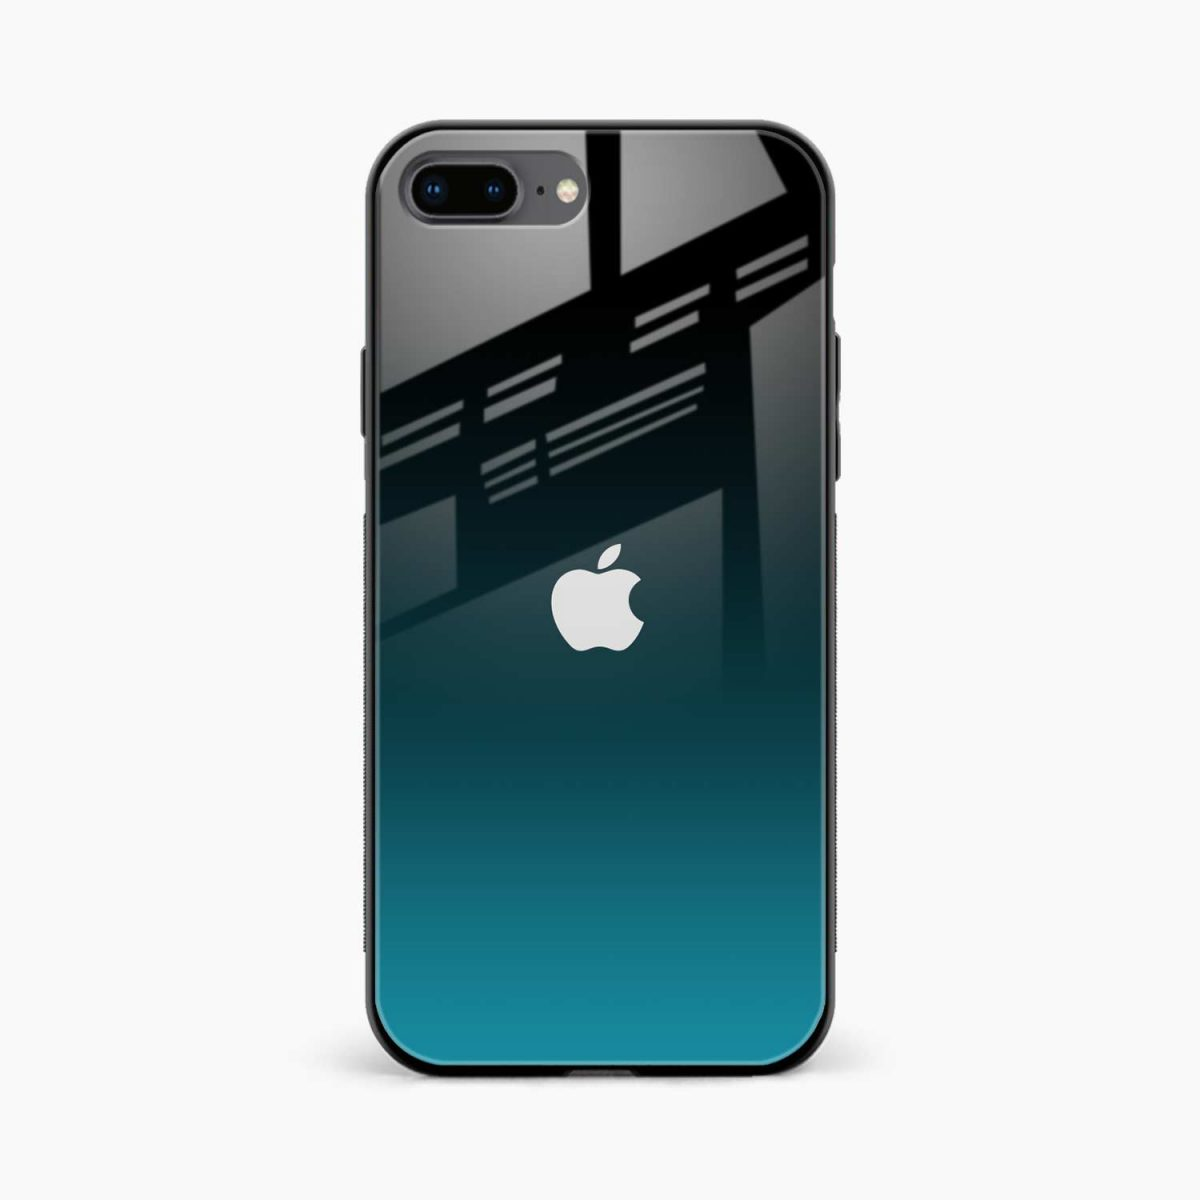 ultramarine glass glass view apple iphone 7 8 plus back cover 5